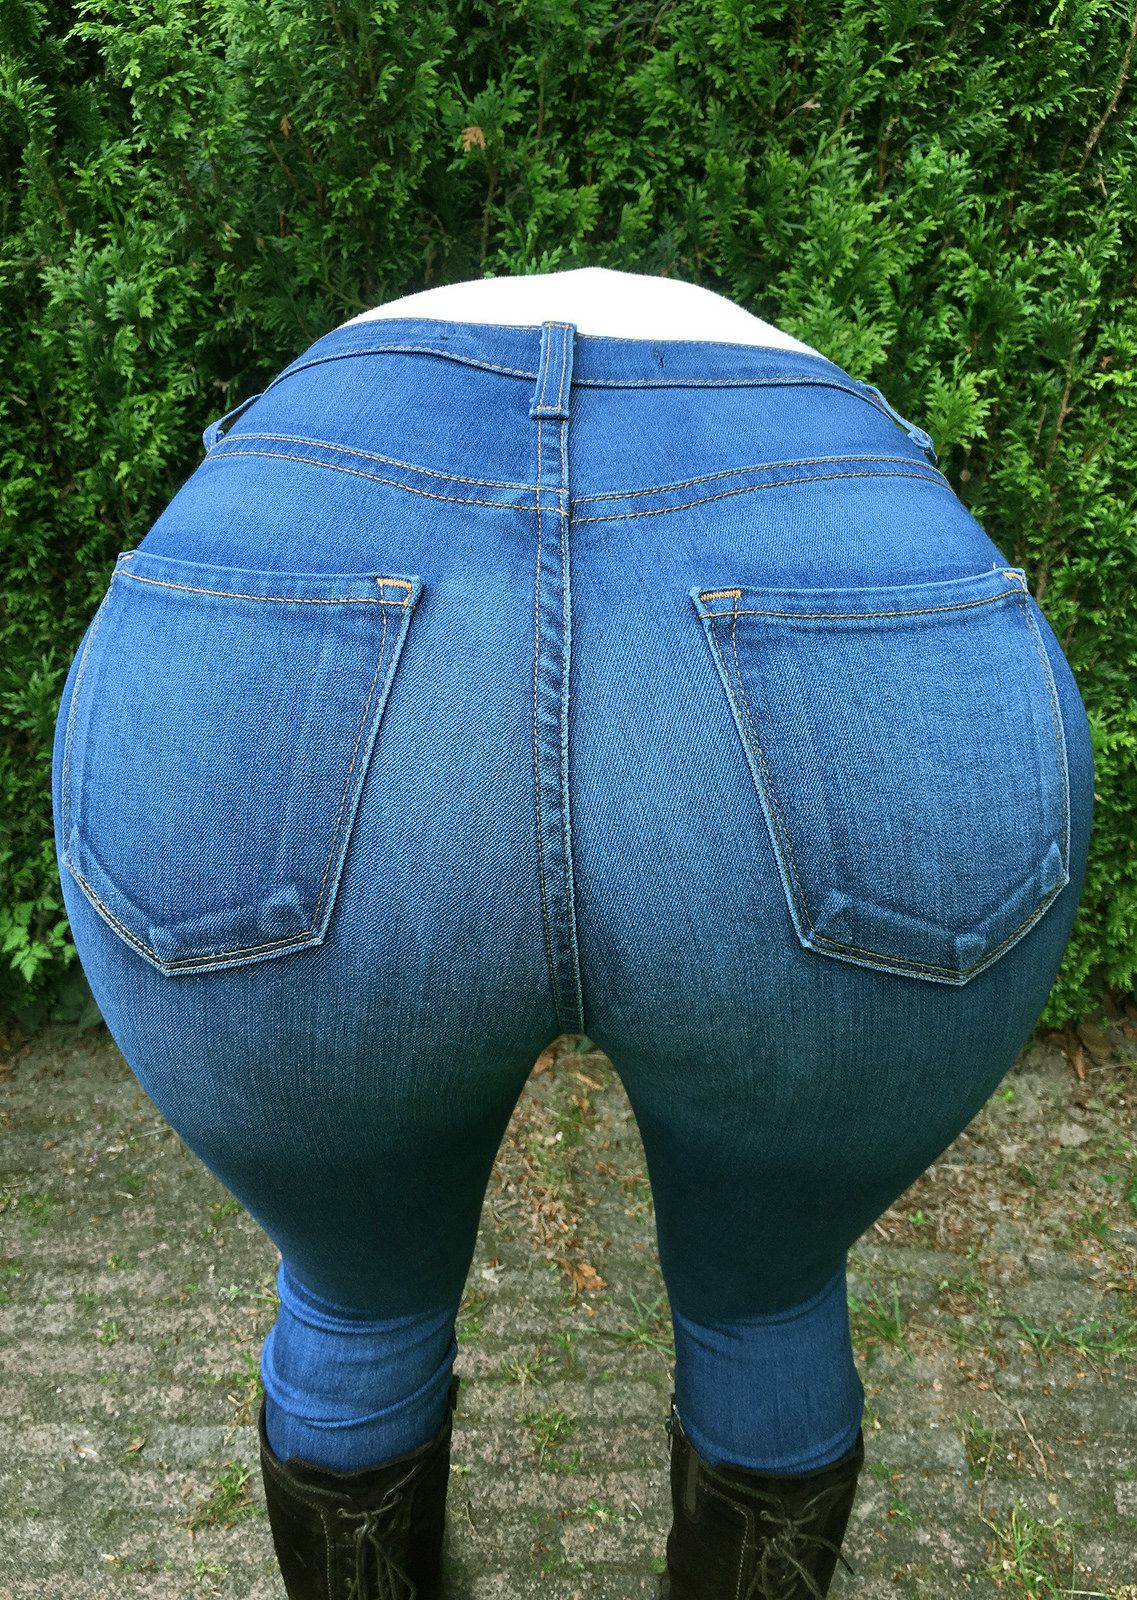 Ass and jeans